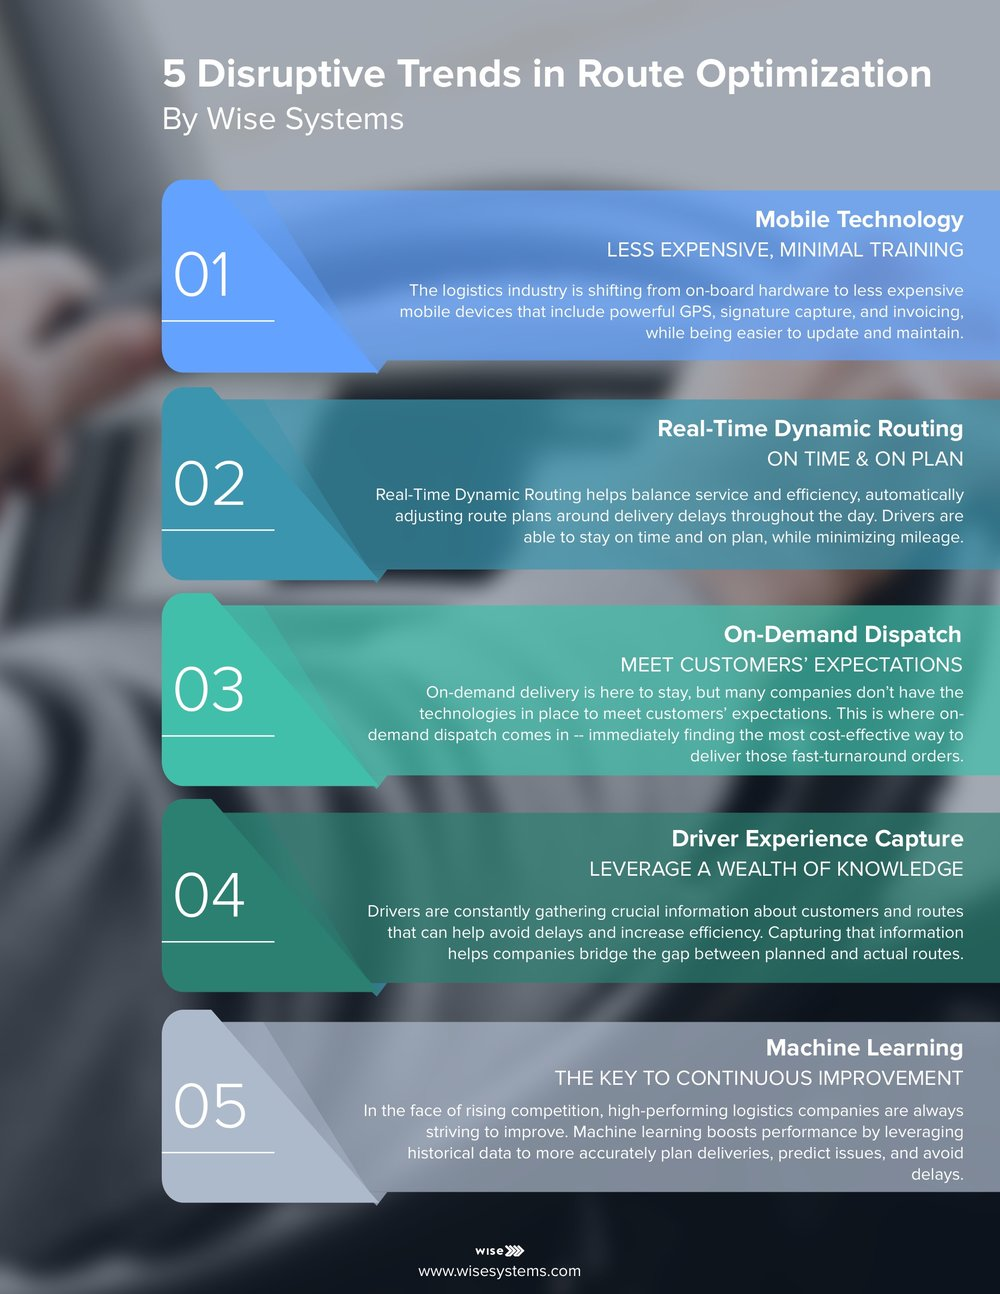 5 Disruptive Trends - Infographic - Wise Systems.jpg